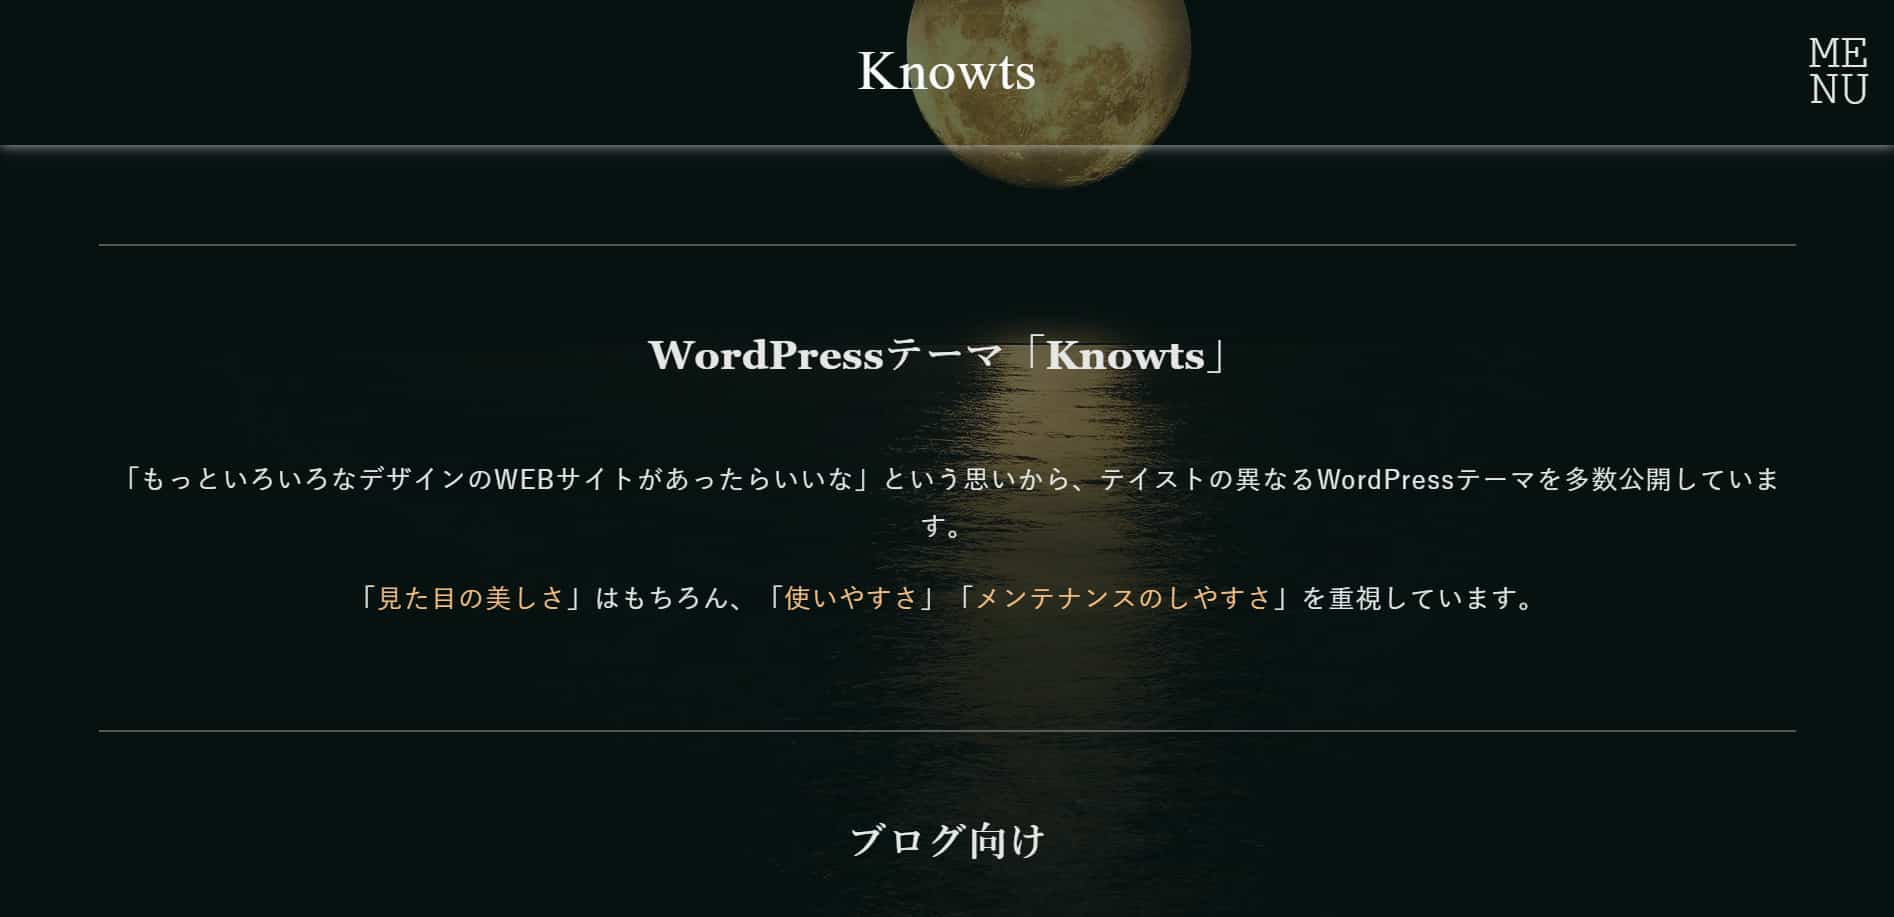 knowts